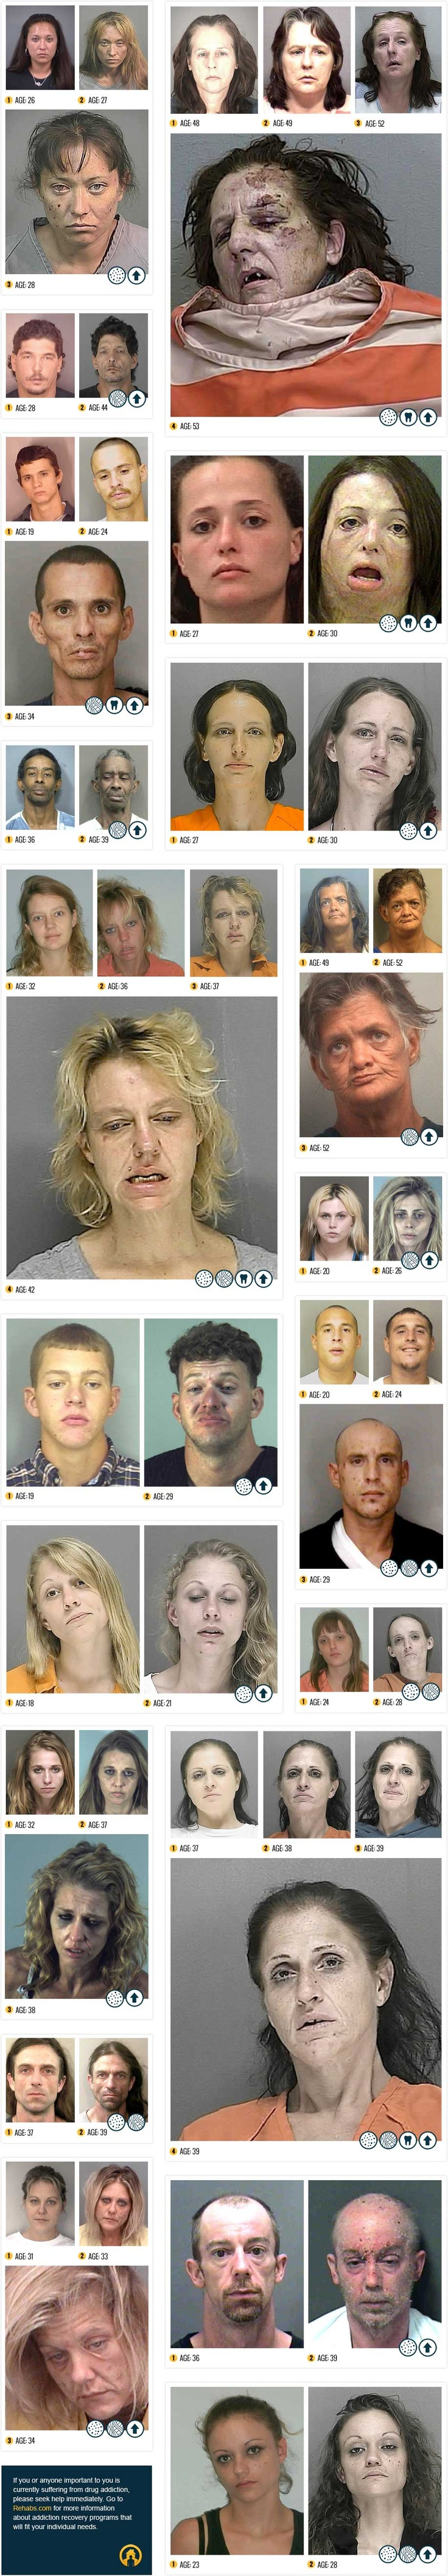 Before & After Drugs | Real Life Infographic Depicting the Destructive Power of Meth Ok guys these are bad pictures but they are the truth. This stuff is poison. PLEASE don't even try it because is locks onto you. We all deserve better than this. Don't do it to yourself